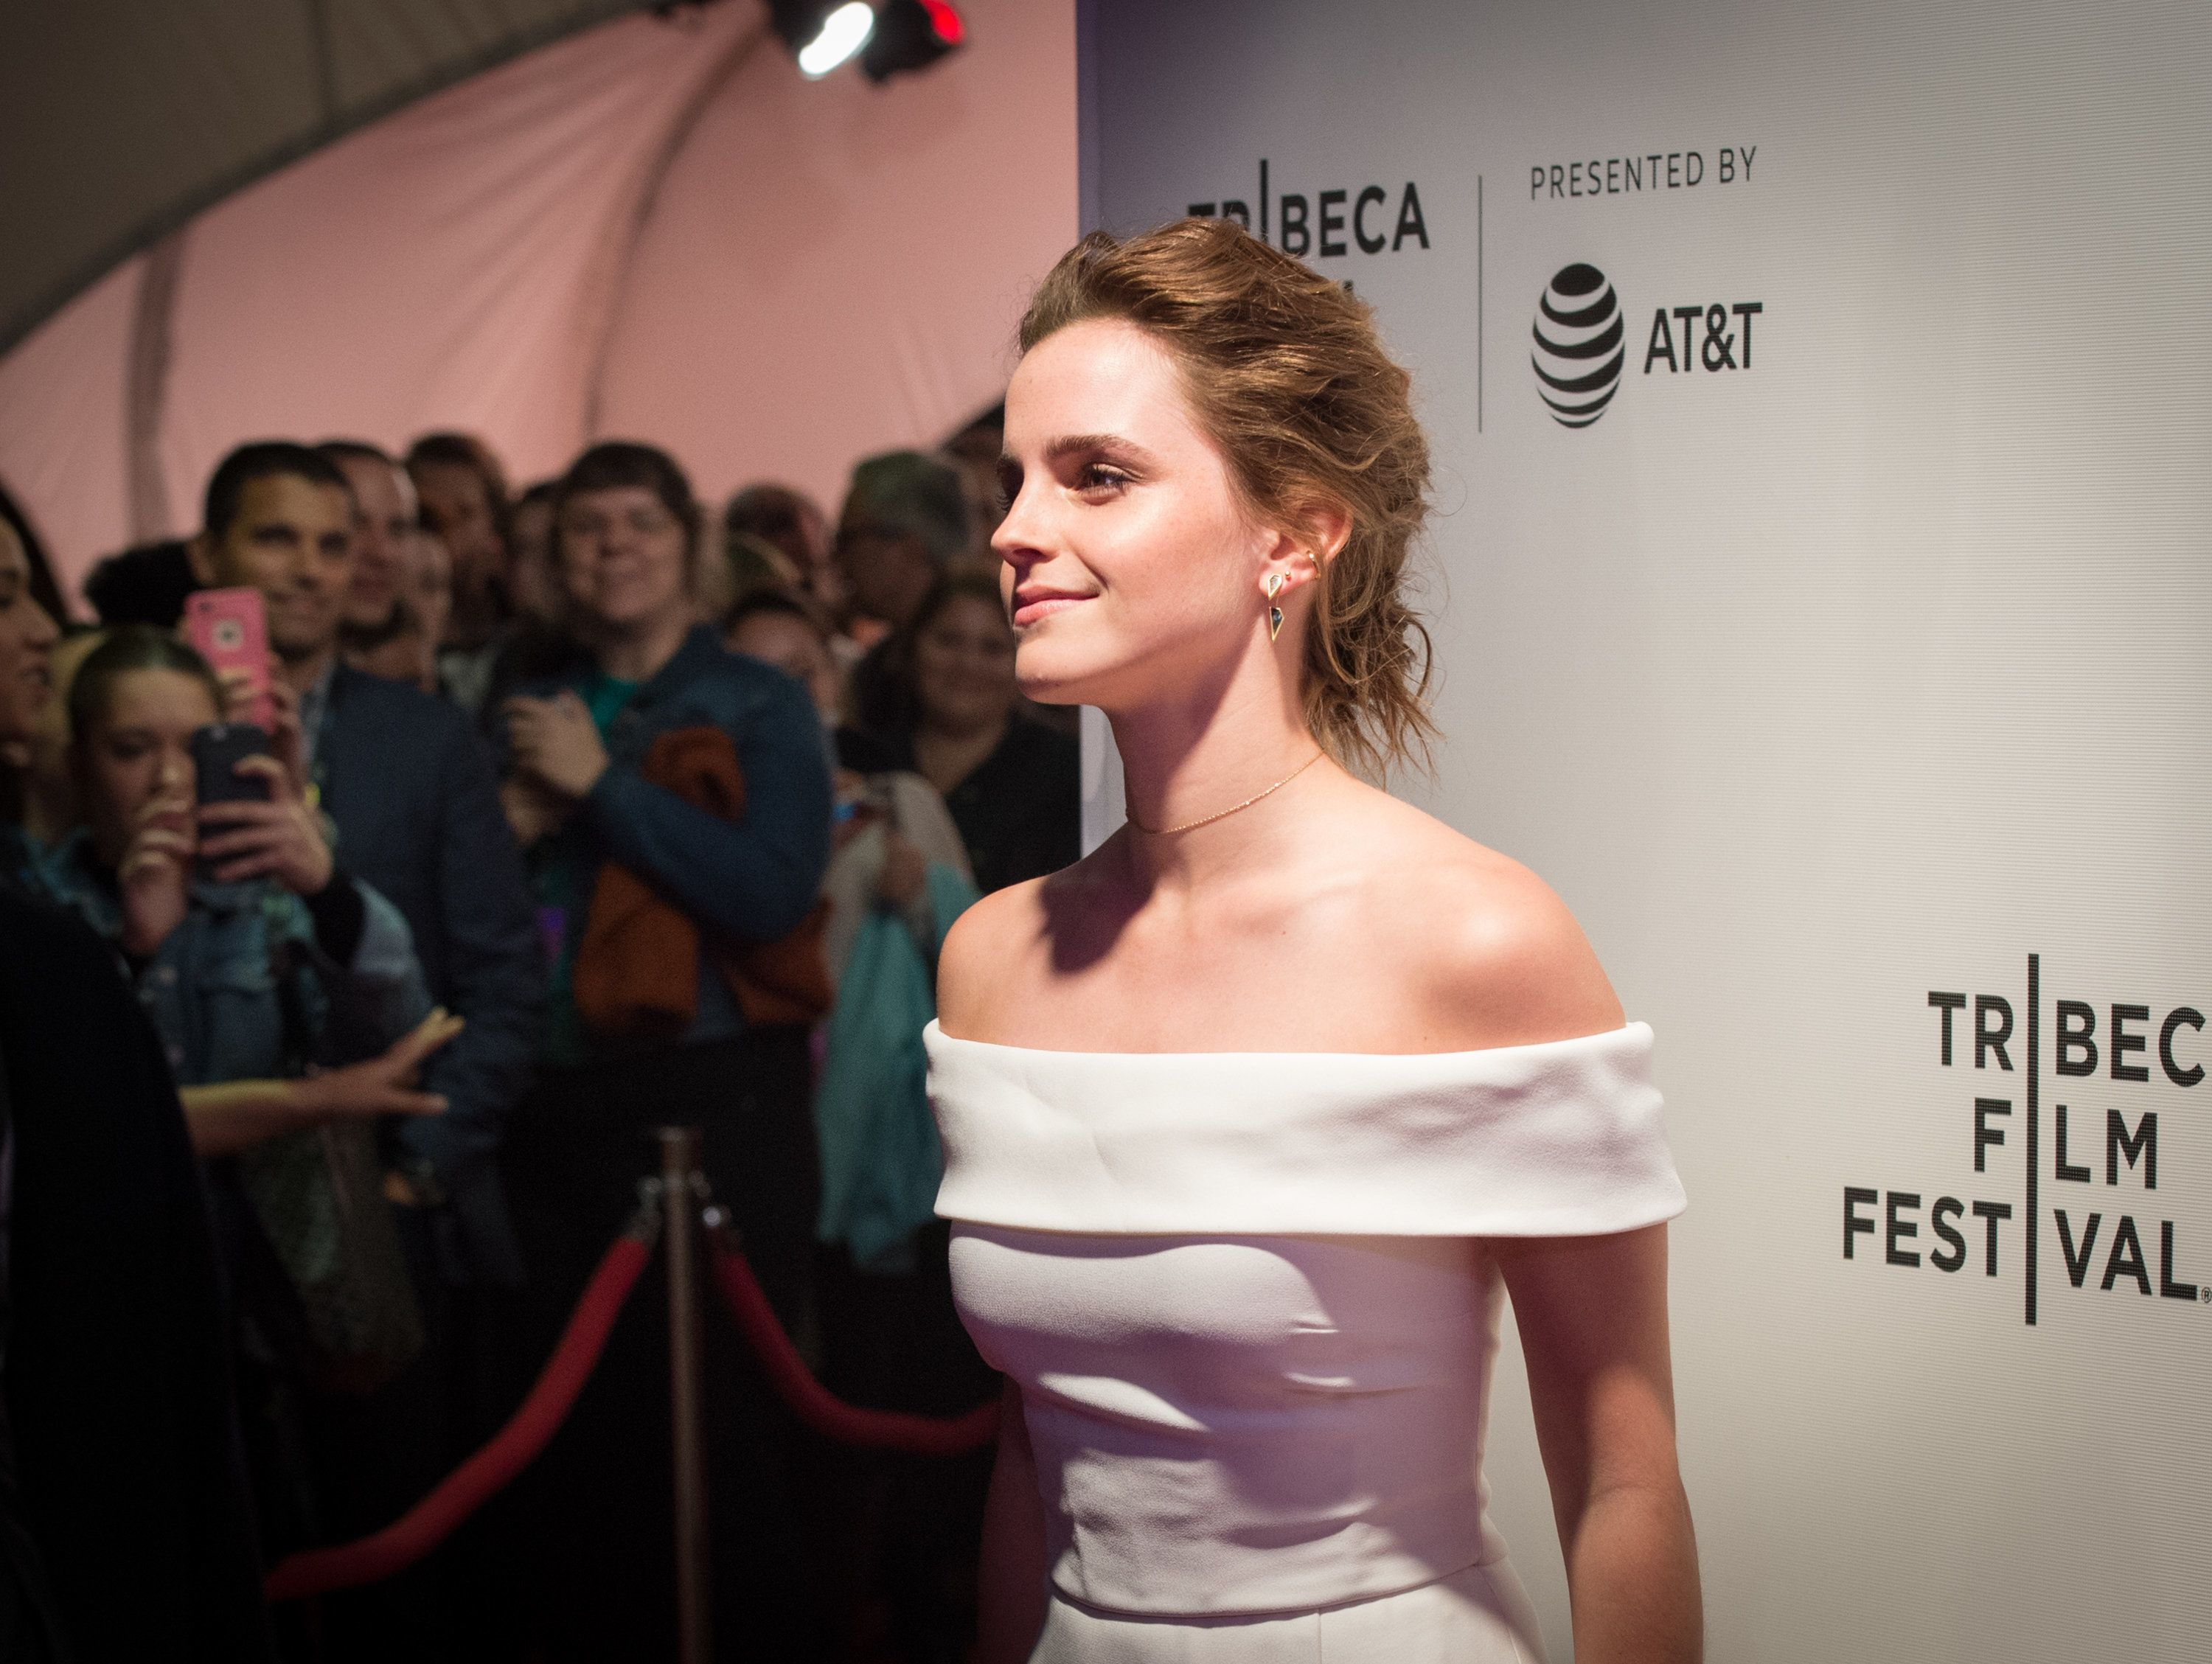 Emma Watson arrives to the World Premiere of 'The Circle' at the 2017 Tribeca Film Festival, April 26, 2017 in New York.  / AFP PHOTO / Bryan R. Smith        (Photo credit should read BRYAN R. SMITH/AFP/Getty Images)